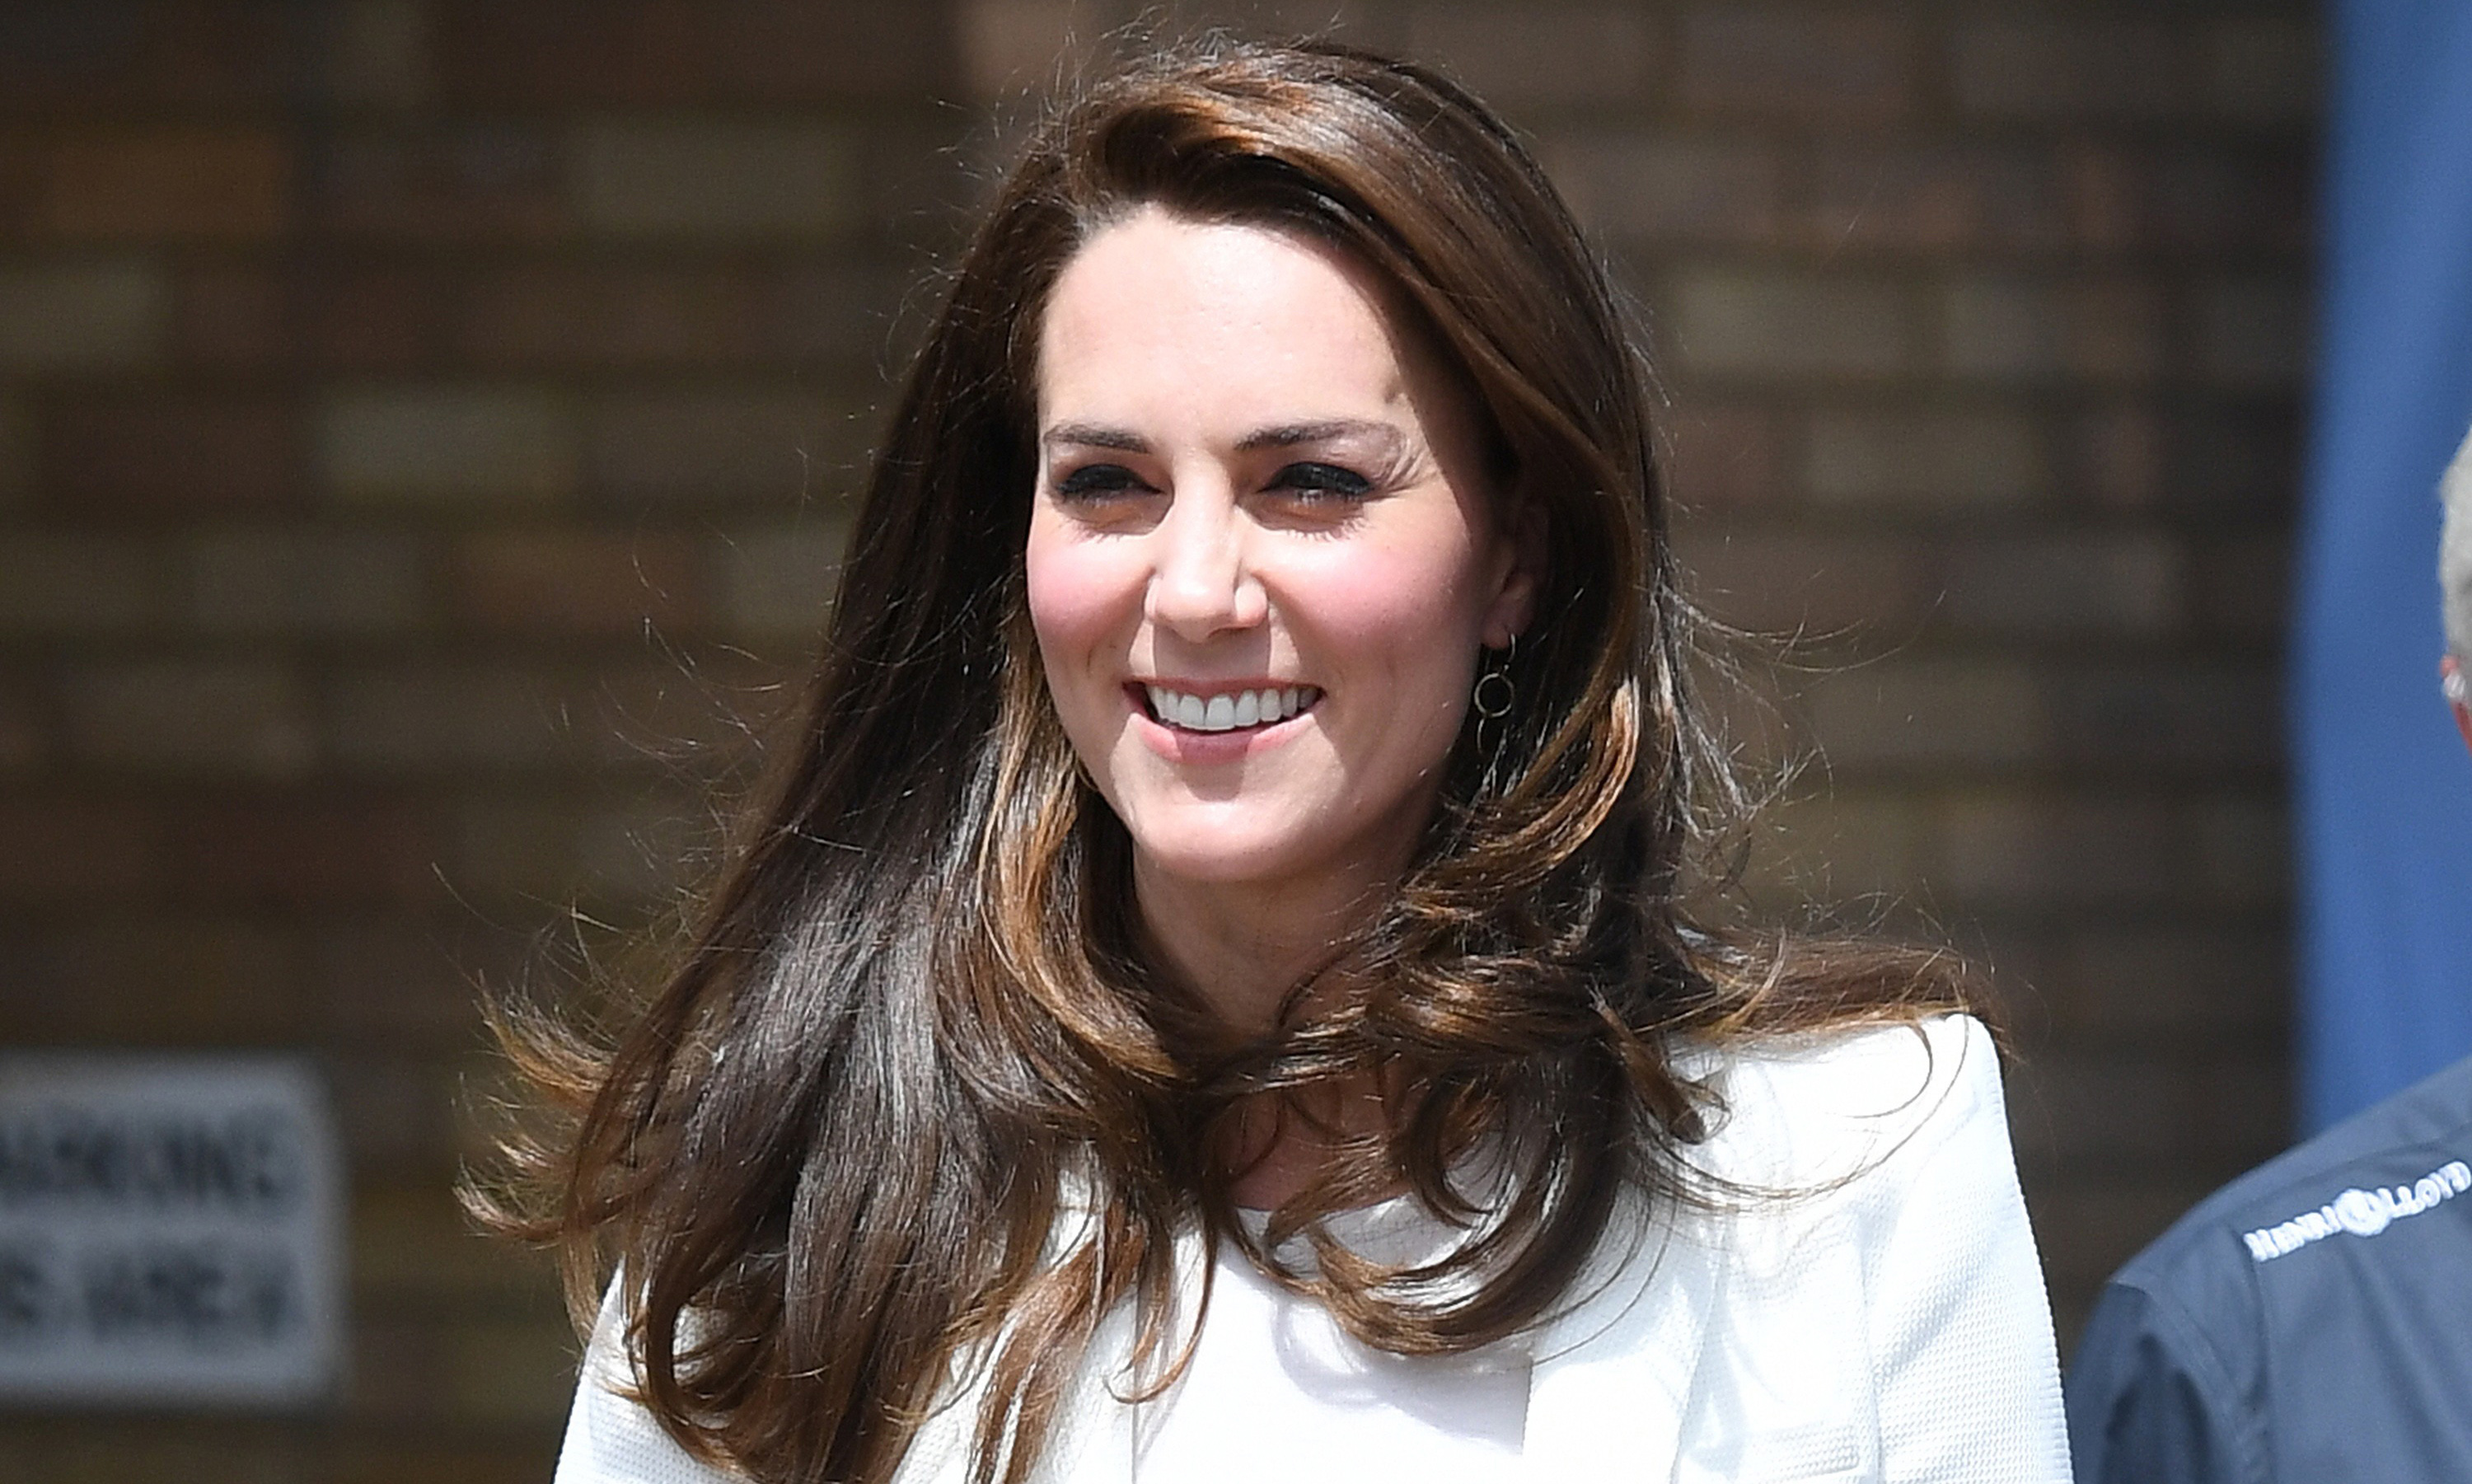 Duchess of Cambridge Wears £220 Boden Coat You Can Buy NOW